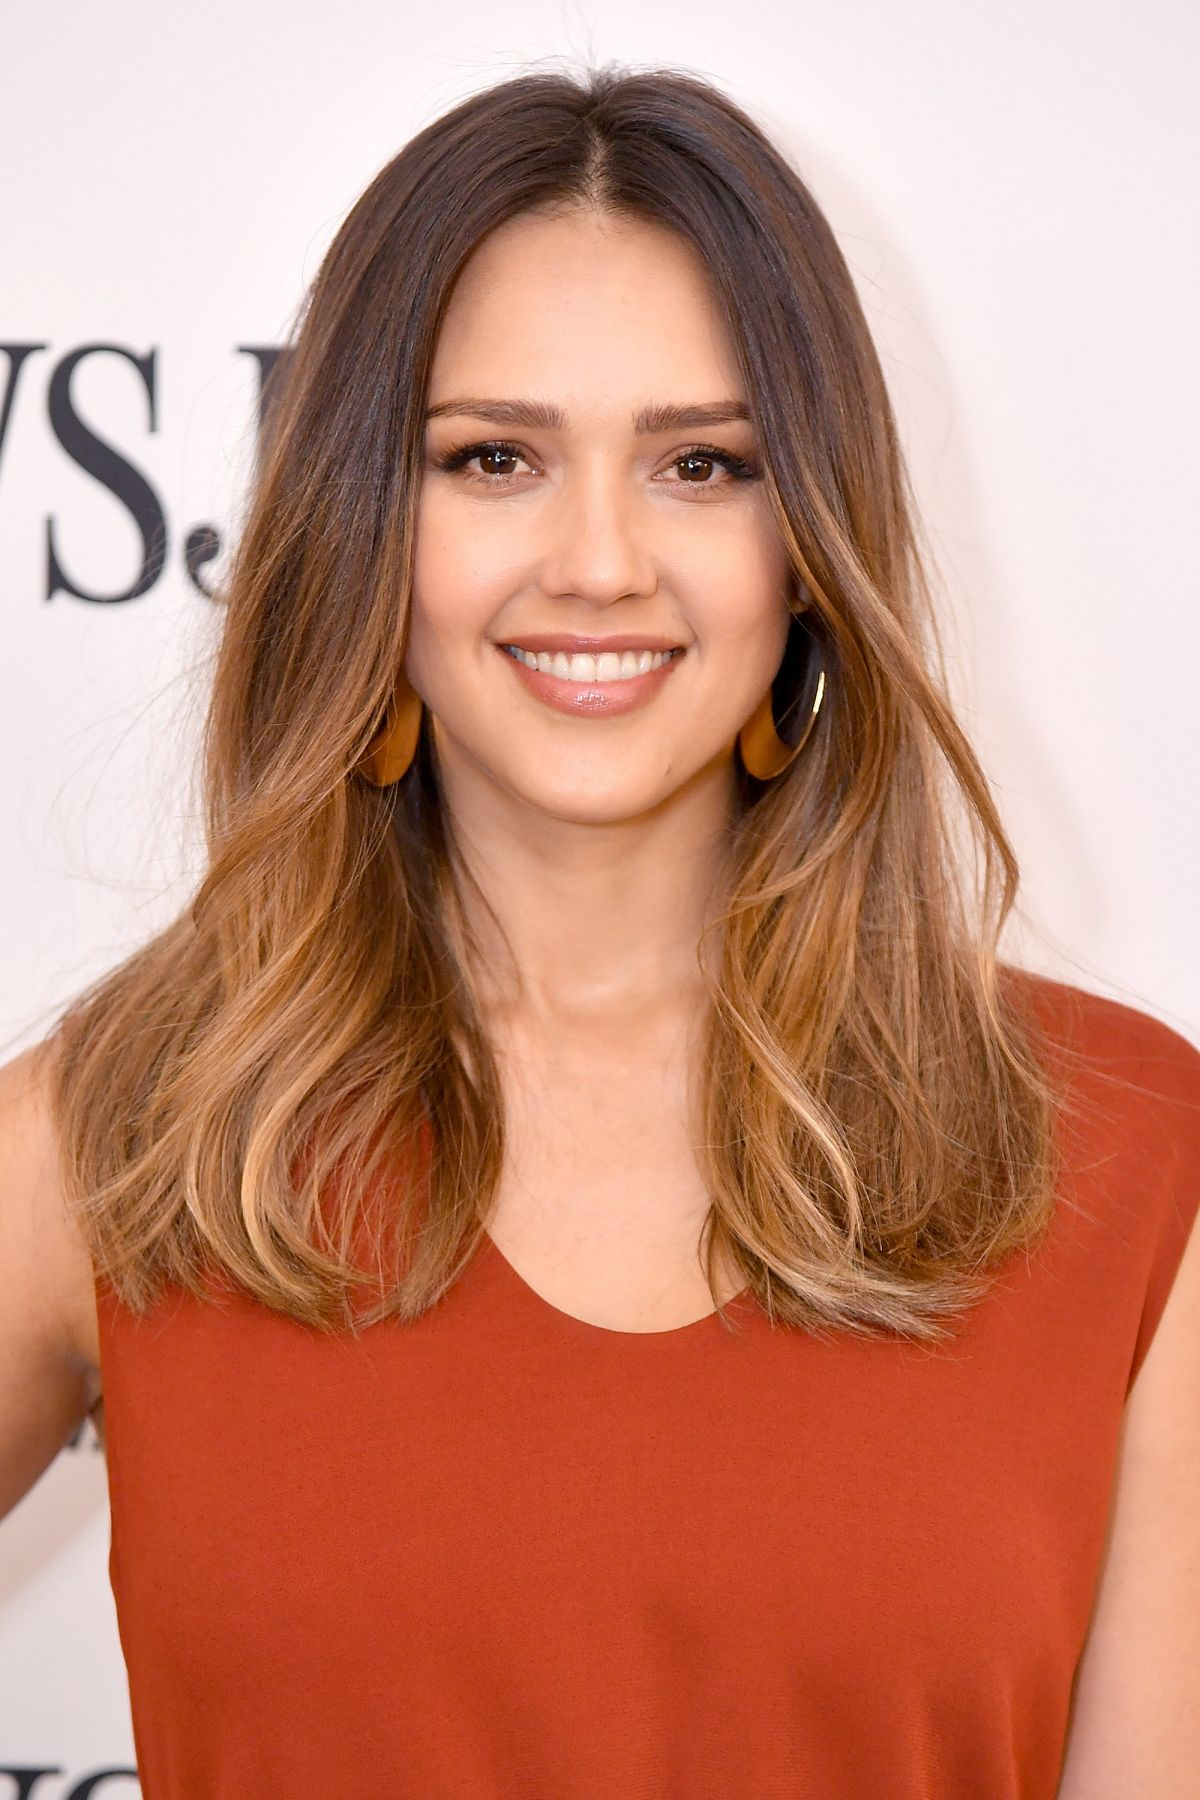 jessica-alba-age-height-weight - Read the Latest Bio and Gossips of your favorite Celebrity at